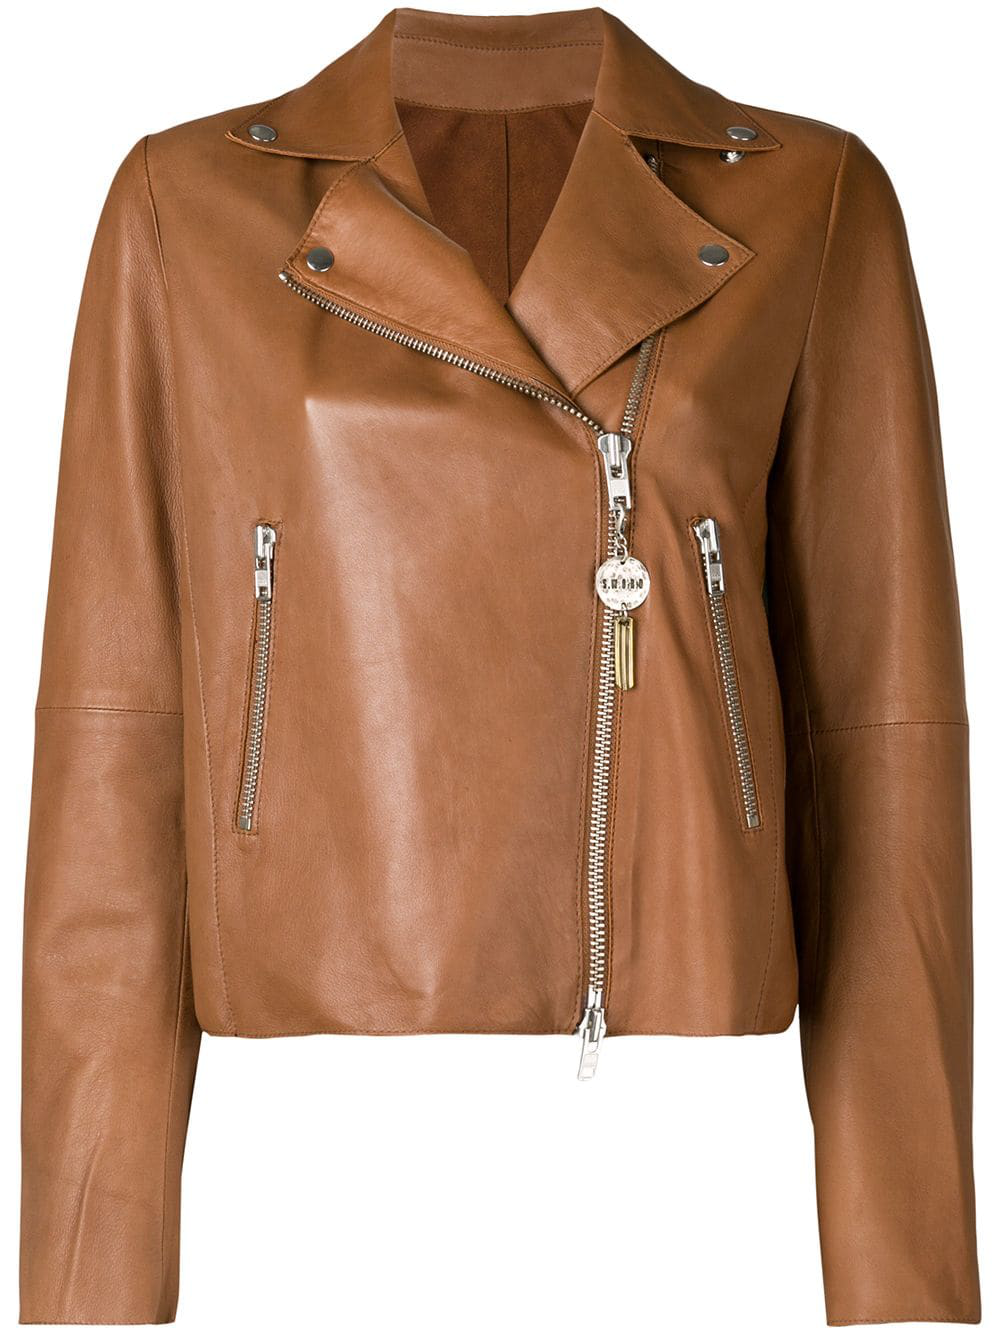 088a93f1df01 Cherry red leather cropped style biker jacket from S.W.O.R.D 6.6.44  featuring notched lapels